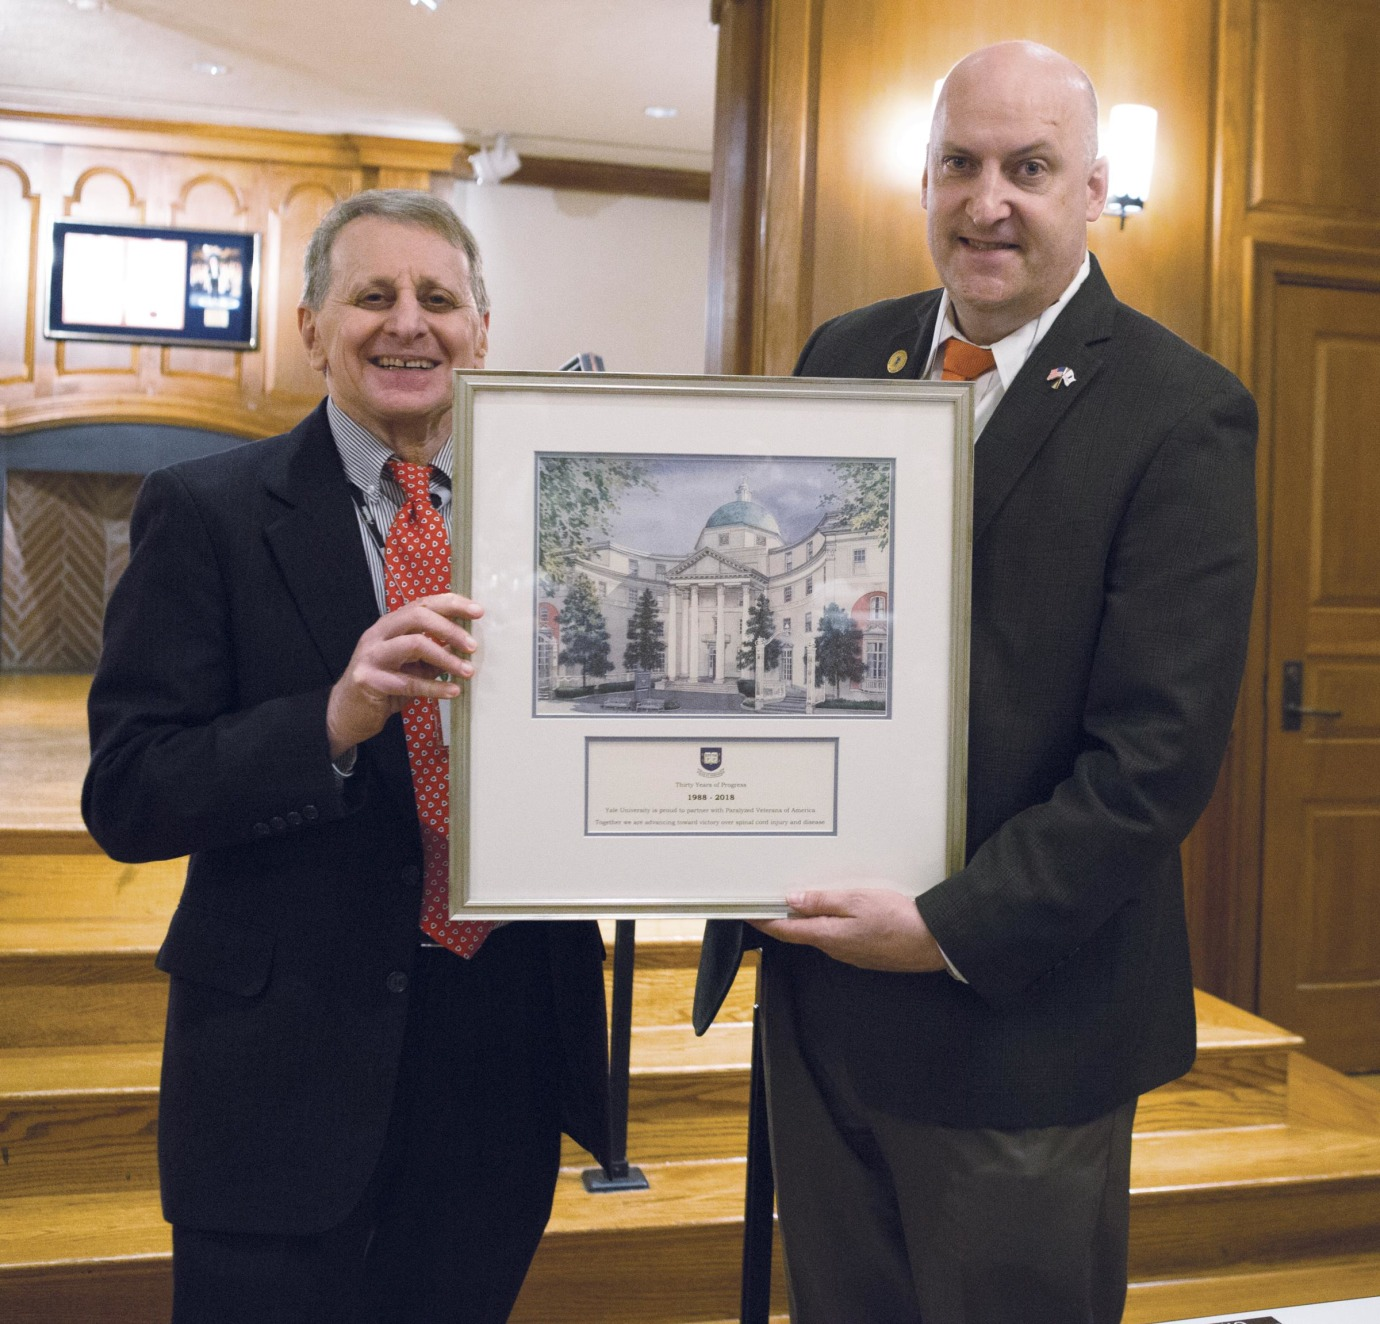 Stephen Waxman (left) and David Zurfluh display a print that celebrates the 30-year partnership between Yale and Paralyzed Veterans of America